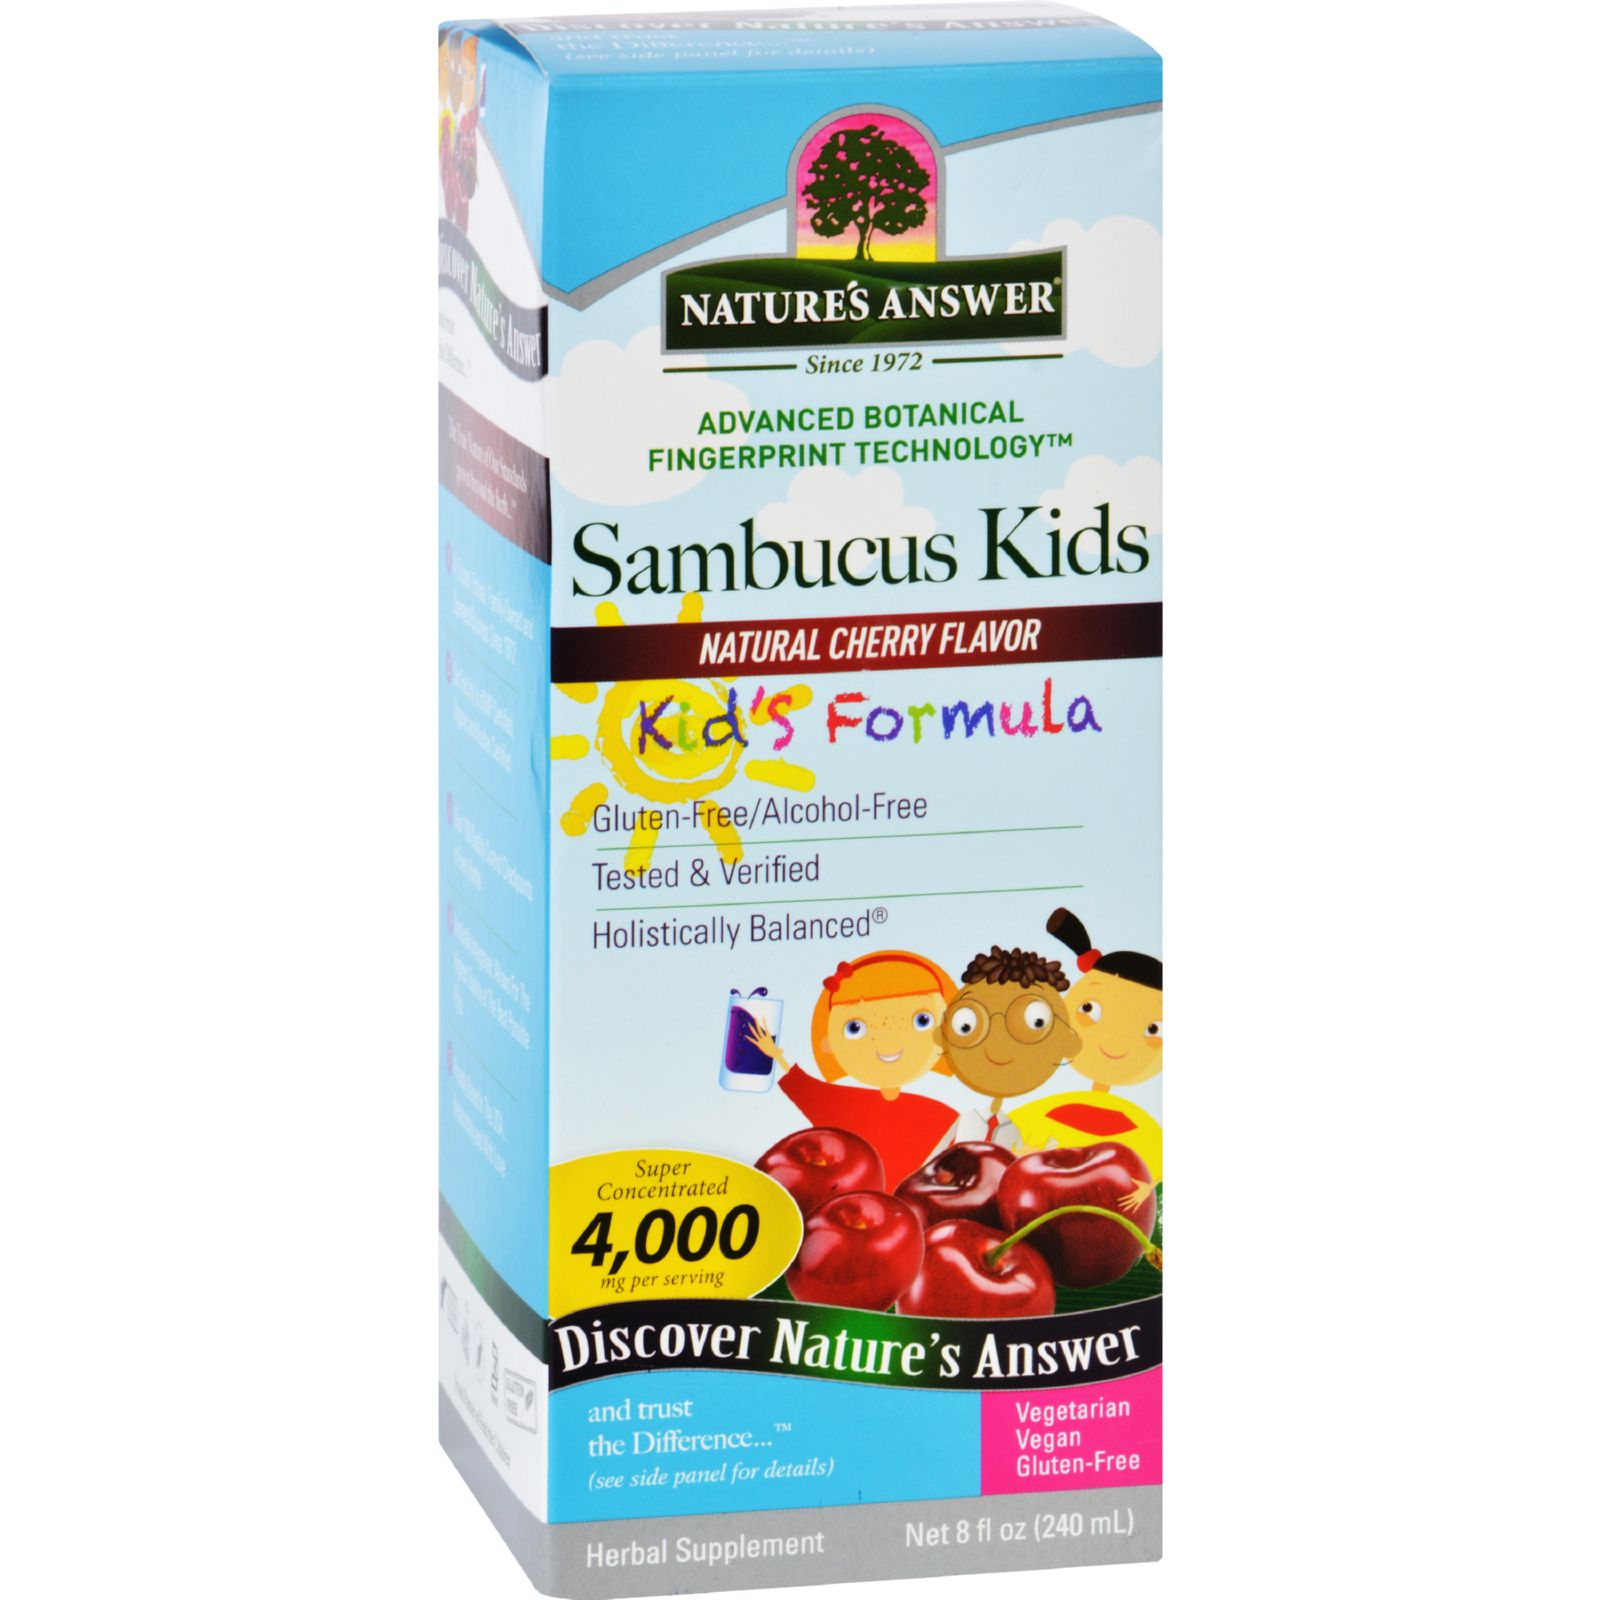 Natures Answer Sambucus - Kids Formula - Natural Cherry Flavor - 8 Oz